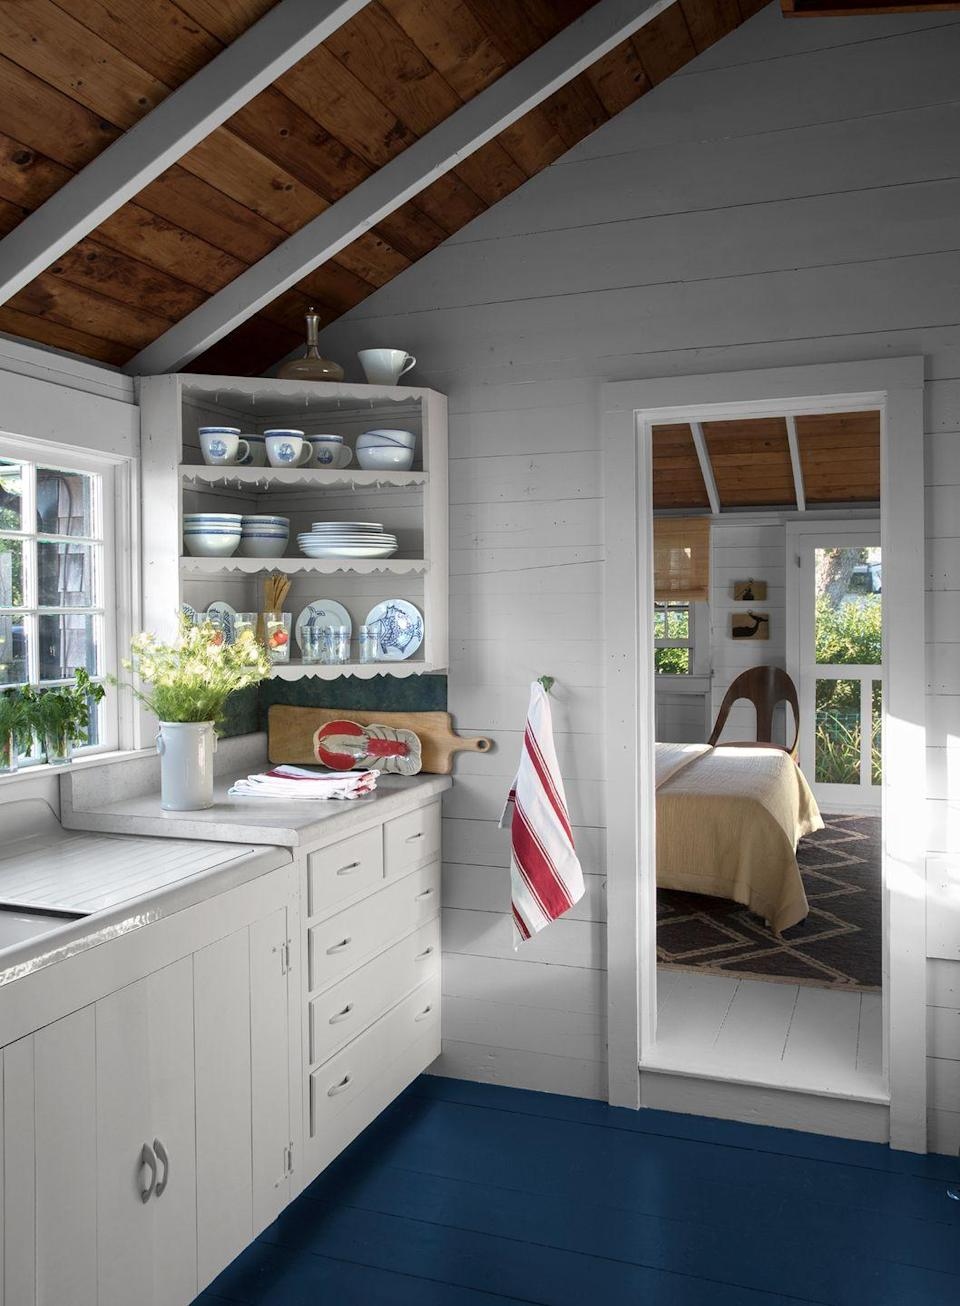 """<p>Designer Kevin Isbell completely revamped this antique fishing shack to make it feel fresh and clean while still keeping it approachable and grounded. For a similar feel in your kitchen, swap out a paper towel wall dispenser with a wall hook for a prettier hand towel. Then tuck your trashcan under the sink instead of keeping in plain sight. </p><p><em><a href=""""https://www.housebeautiful.com/home-remodeling/interior-designers/a15063444/kevin-isbell-interview/"""" rel=""""nofollow noopener"""" target=""""_blank"""" data-ylk=""""slk:See more at House Beautiful »"""" class=""""link rapid-noclick-resp"""">See more at House Beautiful »</a></em></p><p><strong>What you'll need:</strong> Wall hook, $10, <a href=""""https://www.cb2.com/black-2-arm-hook/s673826"""" rel=""""nofollow noopener"""" target=""""_blank"""" data-ylk=""""slk:CB2.com"""" class=""""link rapid-noclick-resp"""">CB2.com</a></p>"""